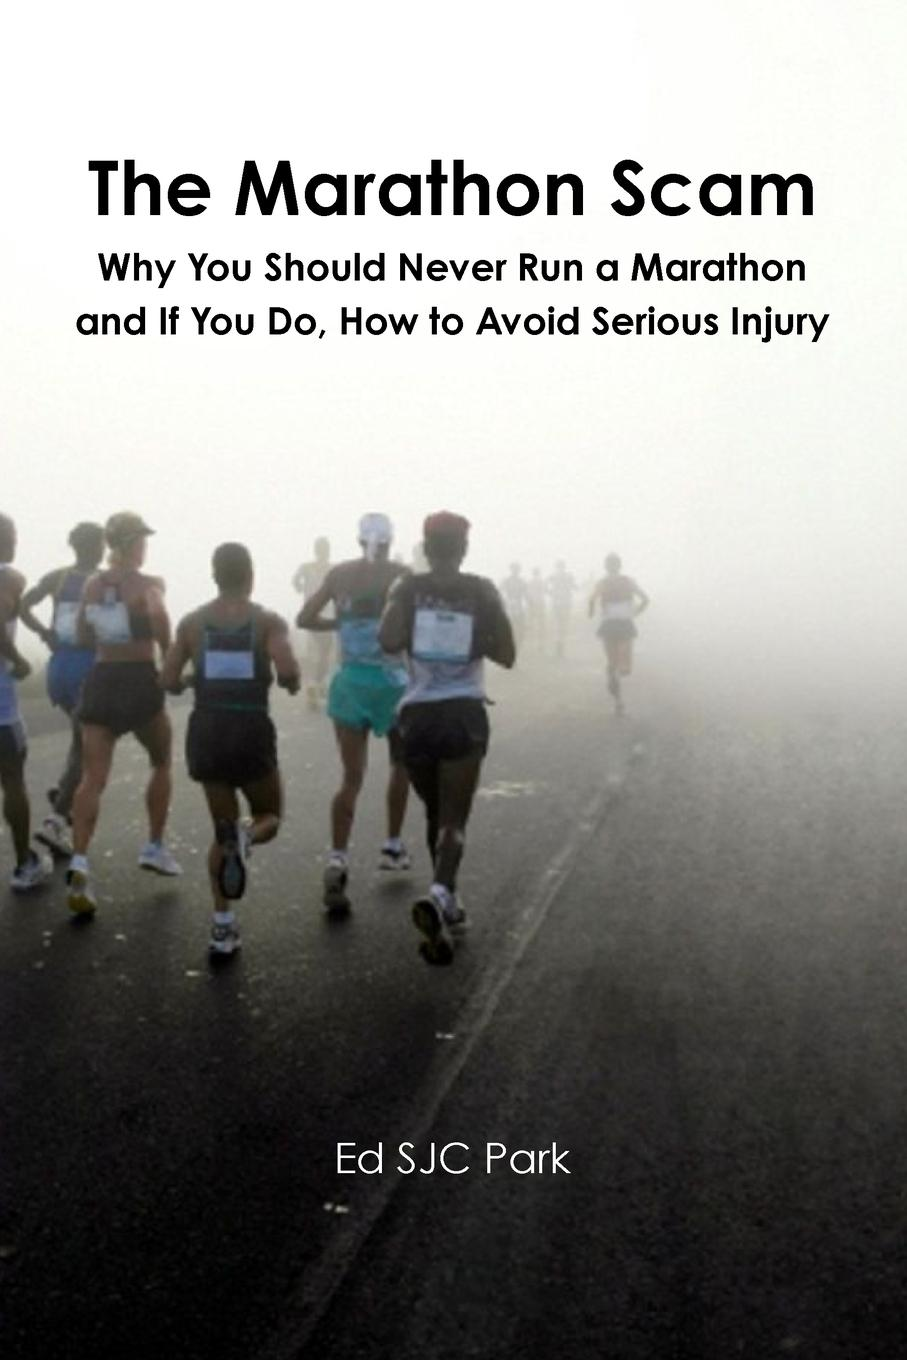 Ed SJC Park The Marathon Scam. Why You Should Never Run a Marathon and If You Do, How to Avoid Serious Injury ed sjc park god from the machine